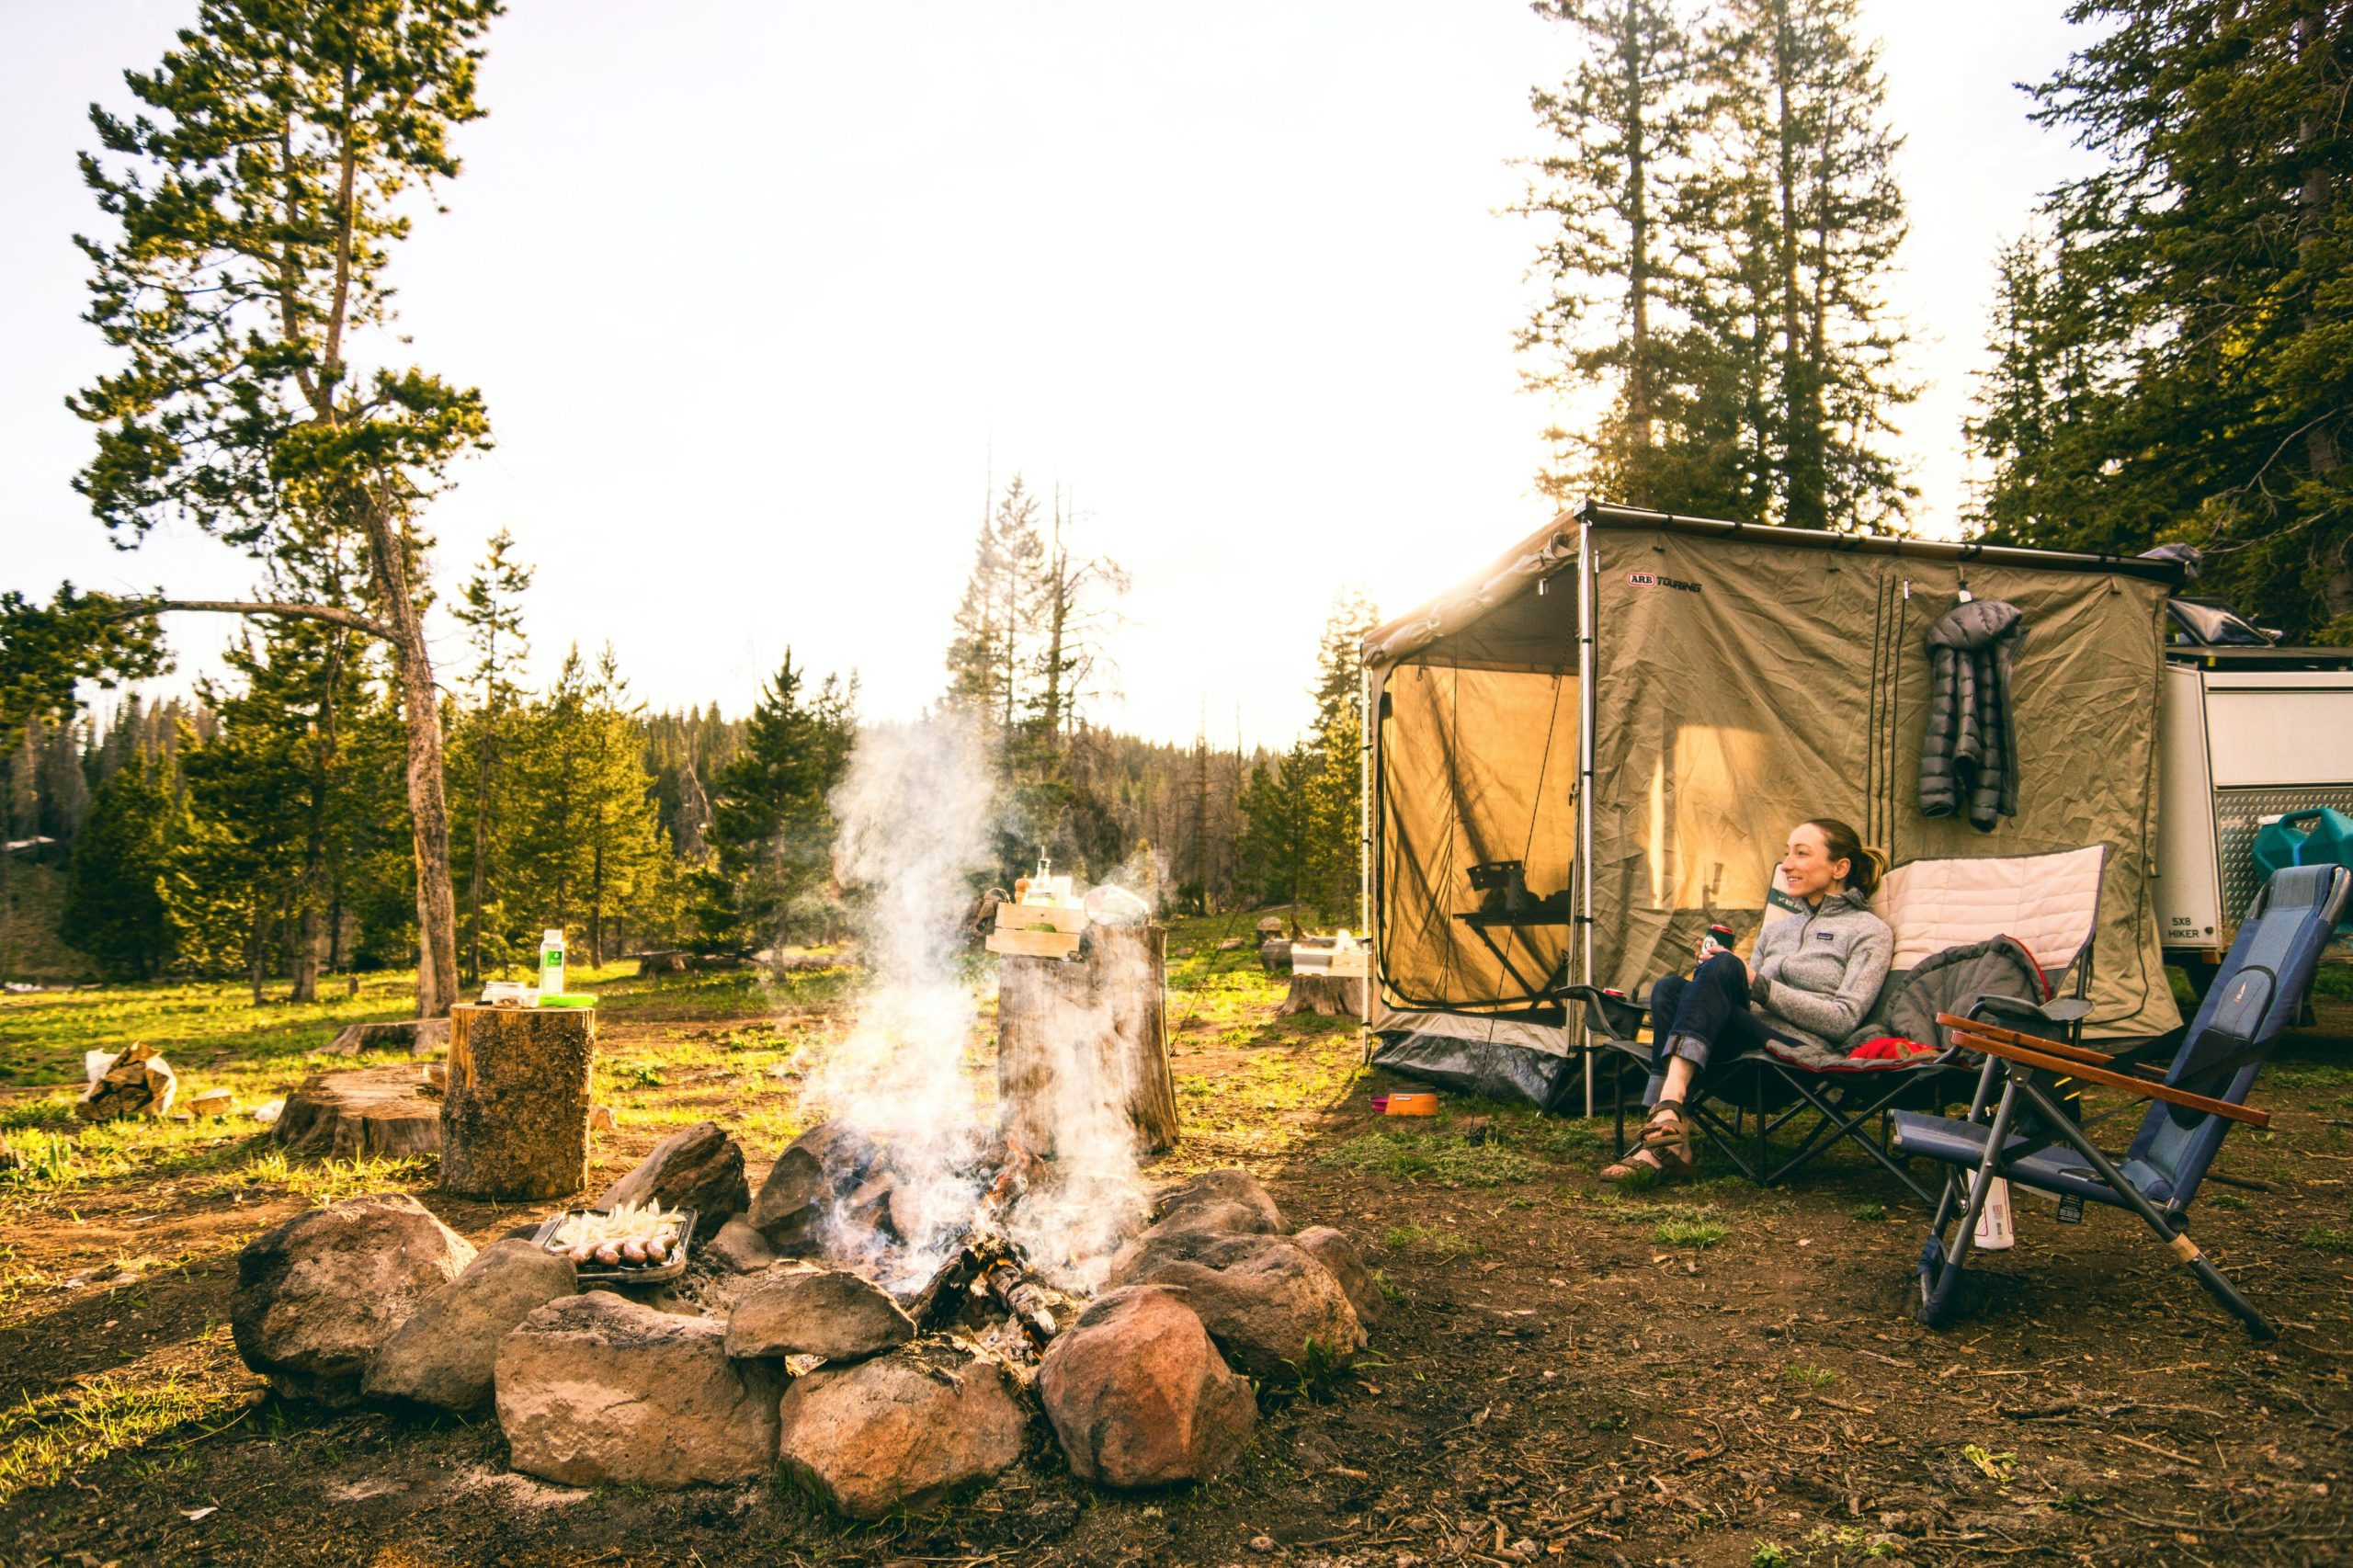 Camping Meals From Zero To Hero